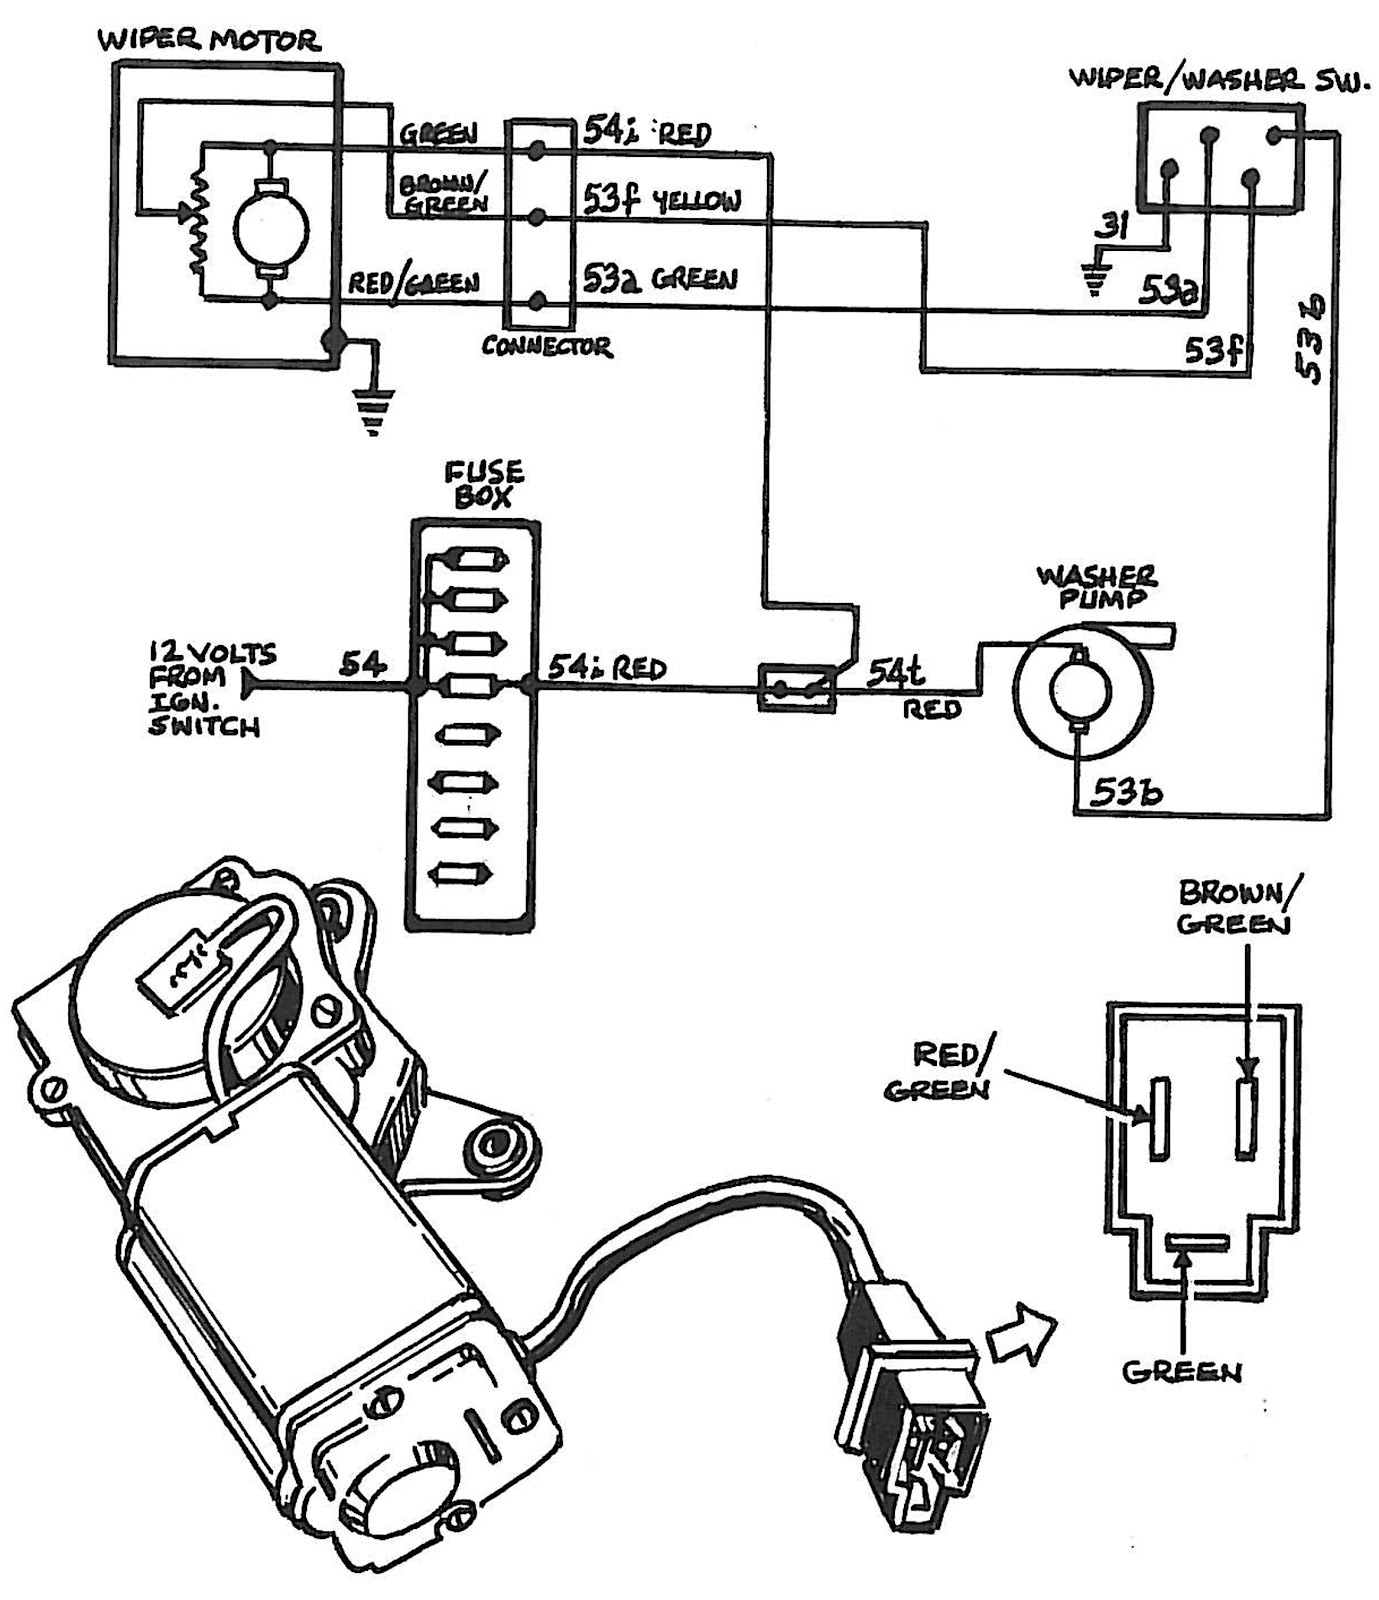 Chevrolet Wiper Wiring Diagram on 2002 Jaguar S Type Wiring Diagram